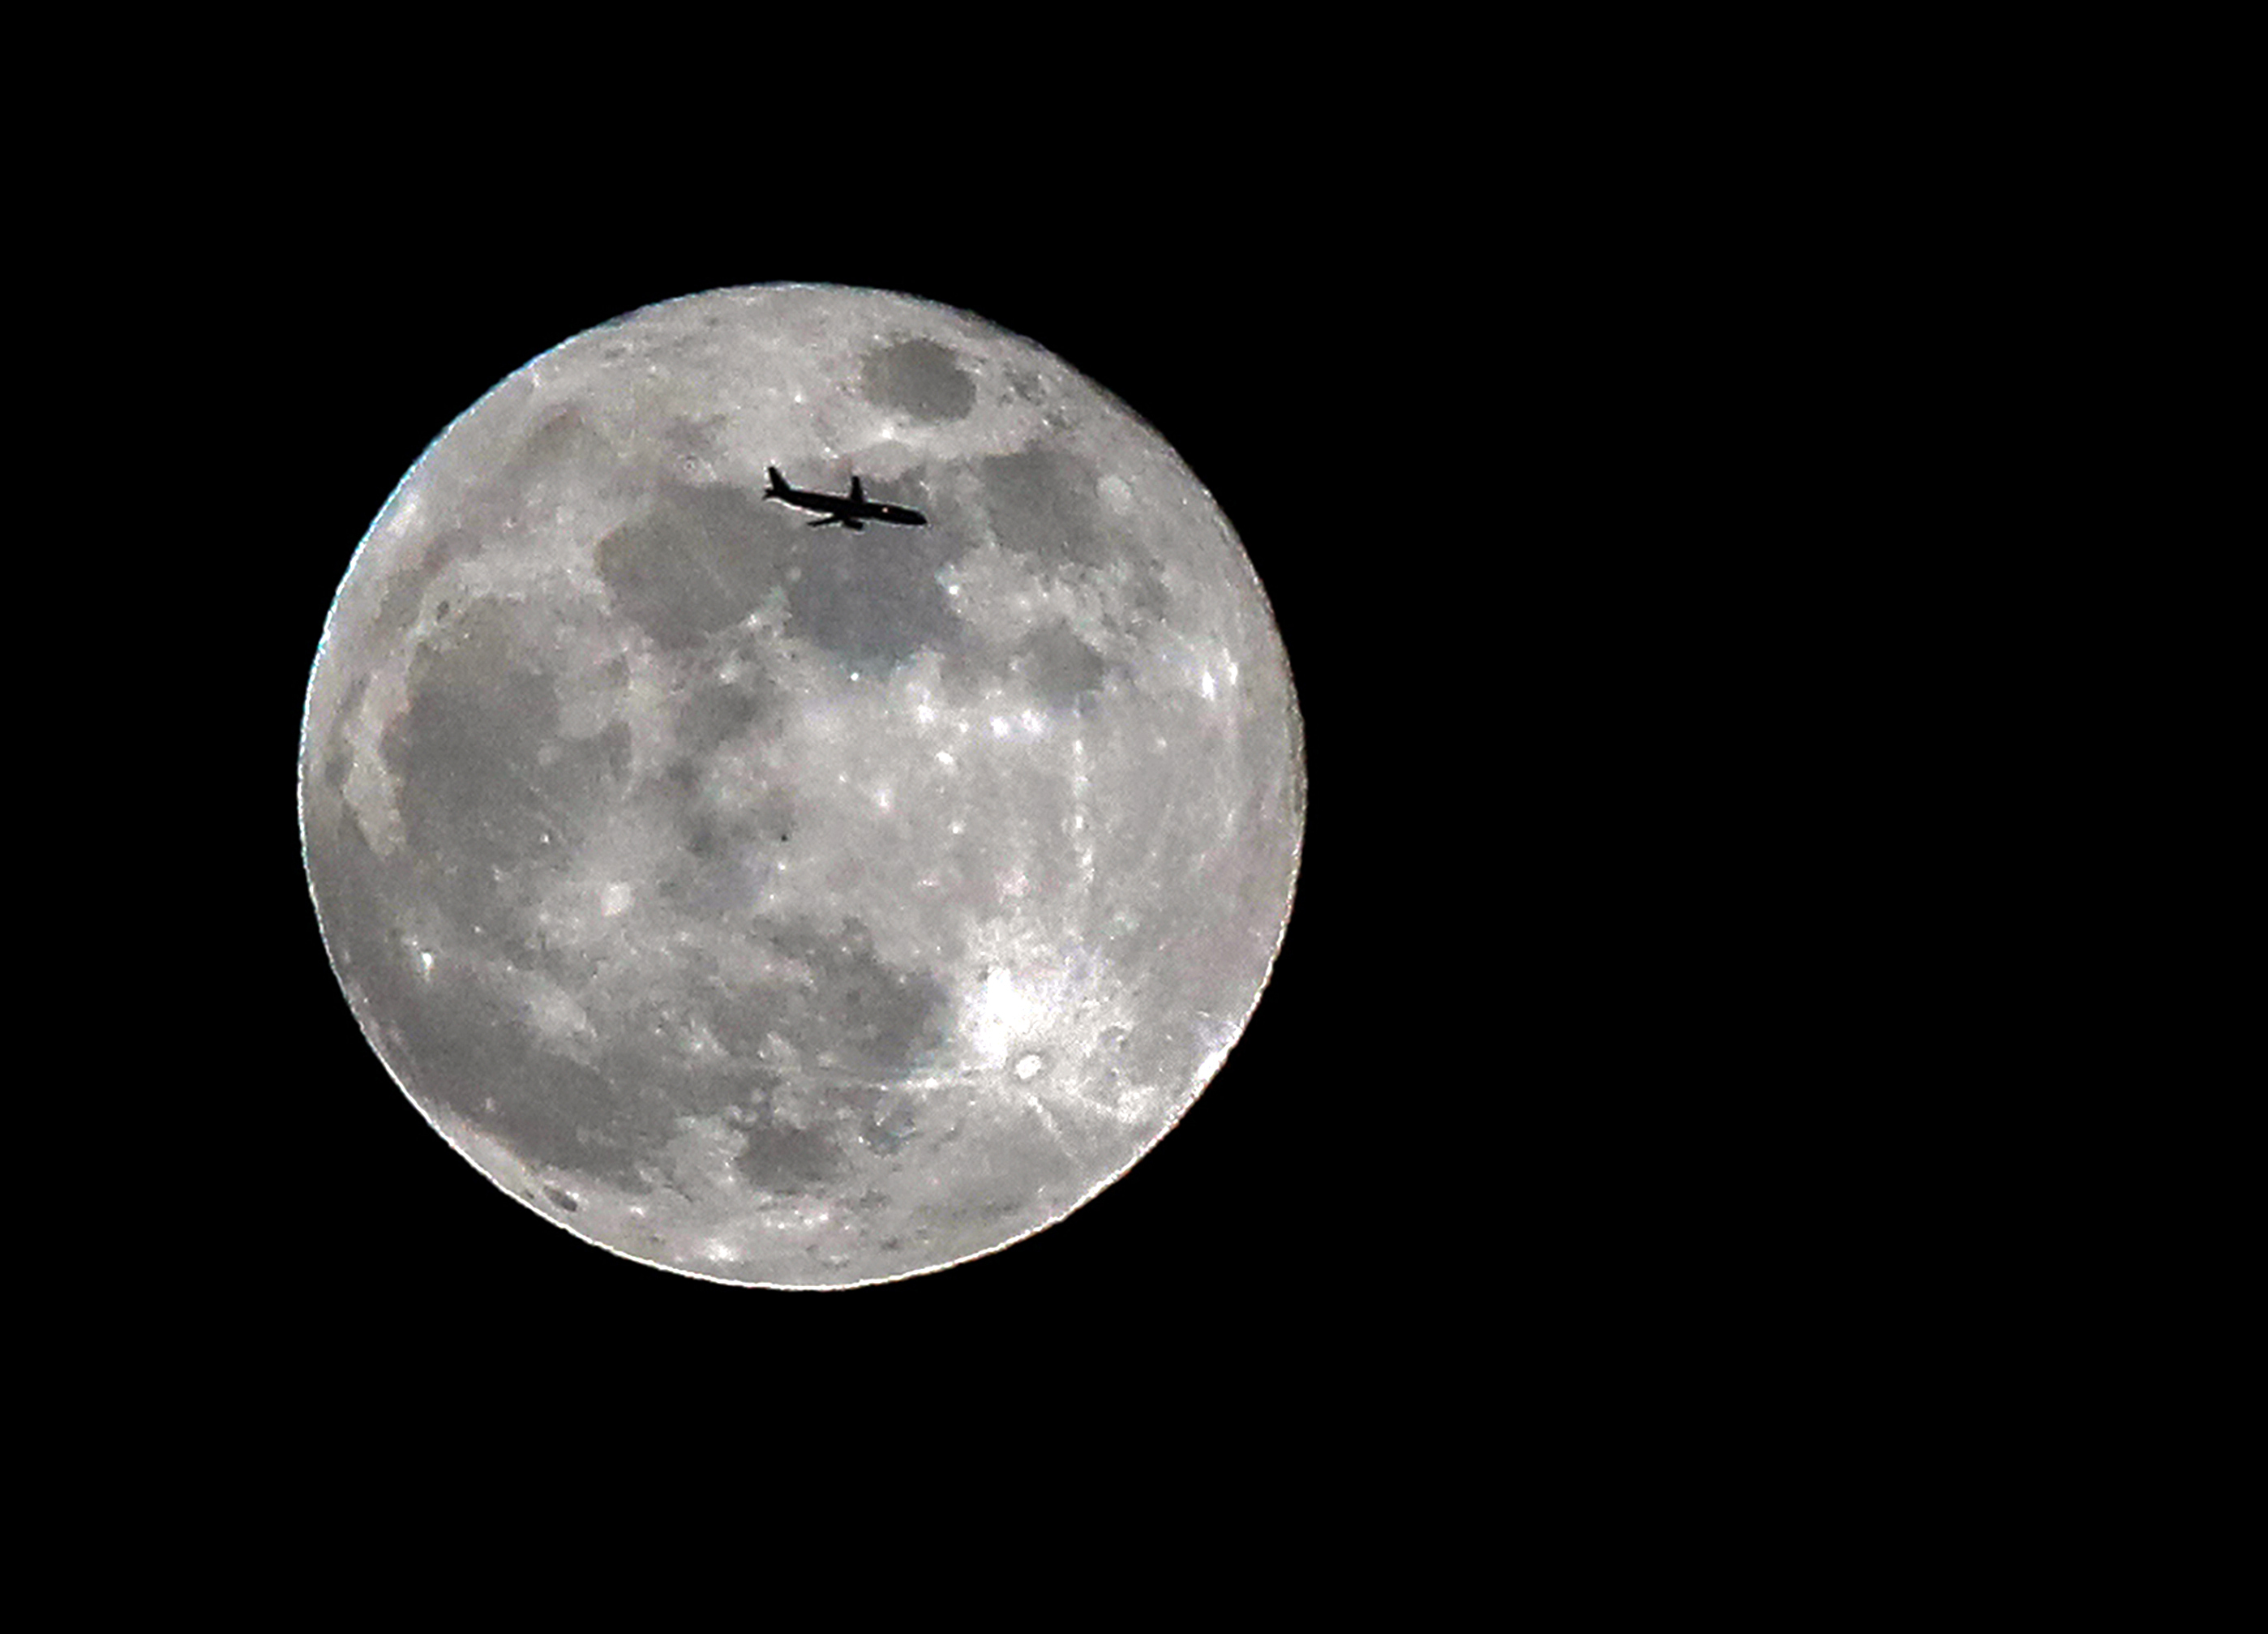 Giant moon silhouetted by passenger jet